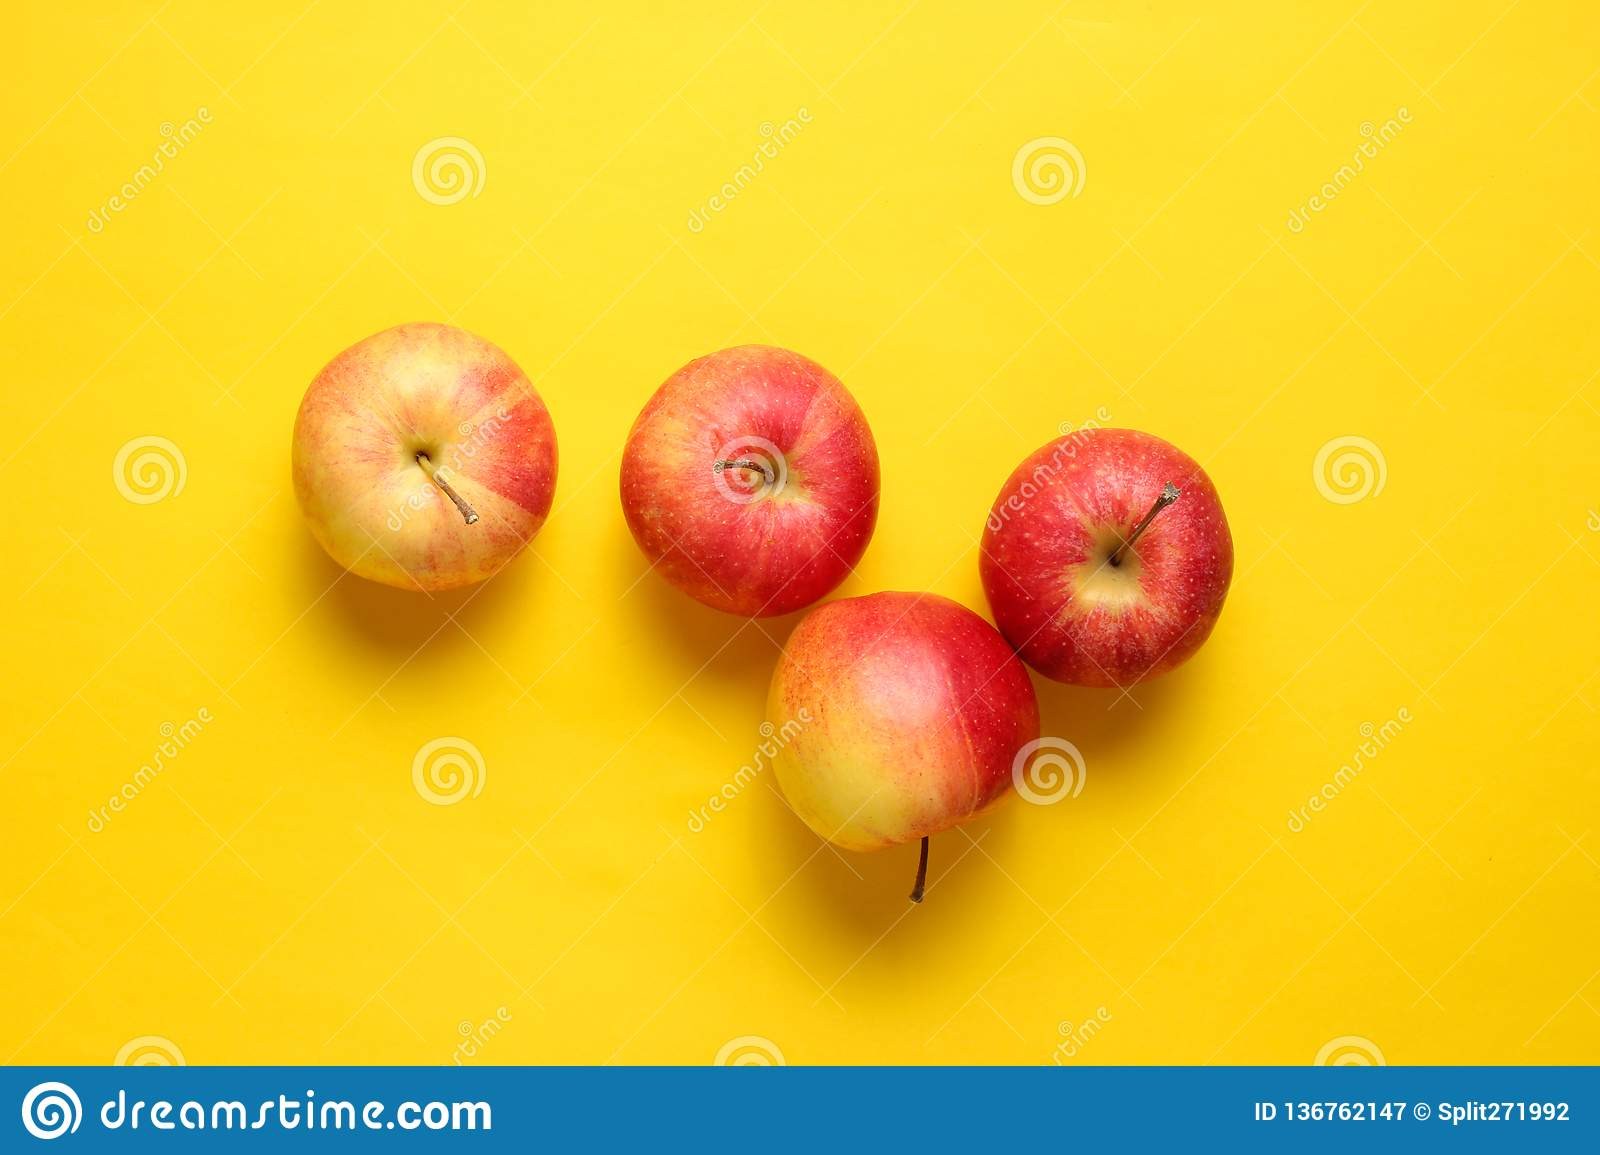 Red apples on yellow background